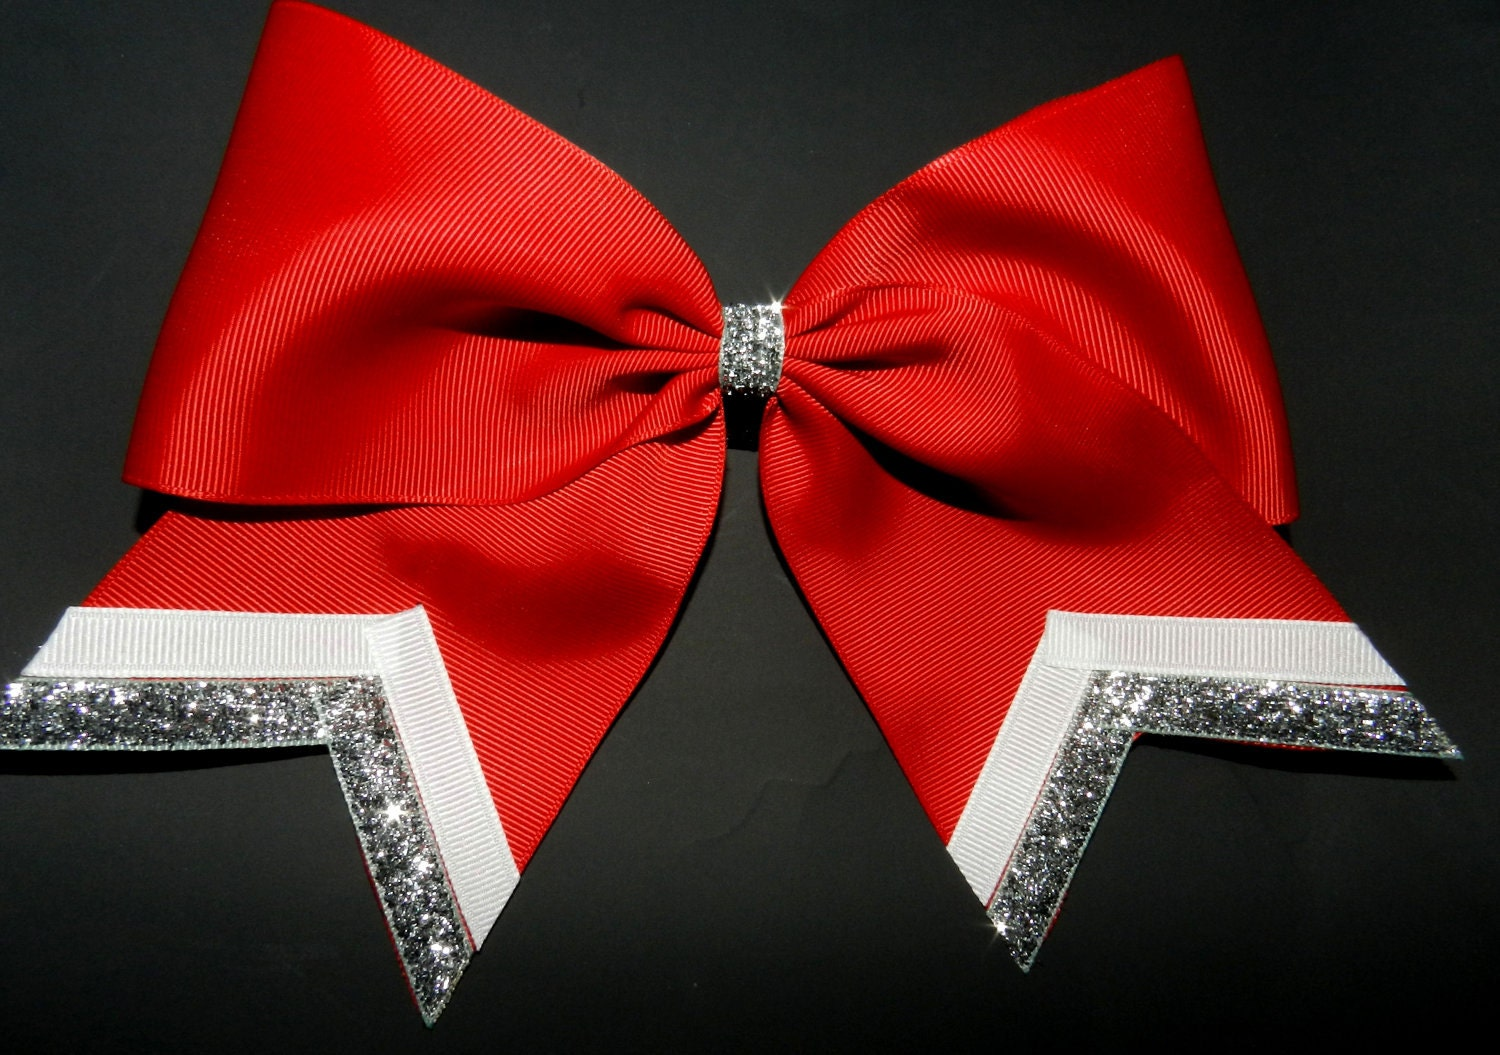 1000 images about cheer on pinterest cheerleading bows cheer bow tutorial and cheer bows - Cute cheer bows ...